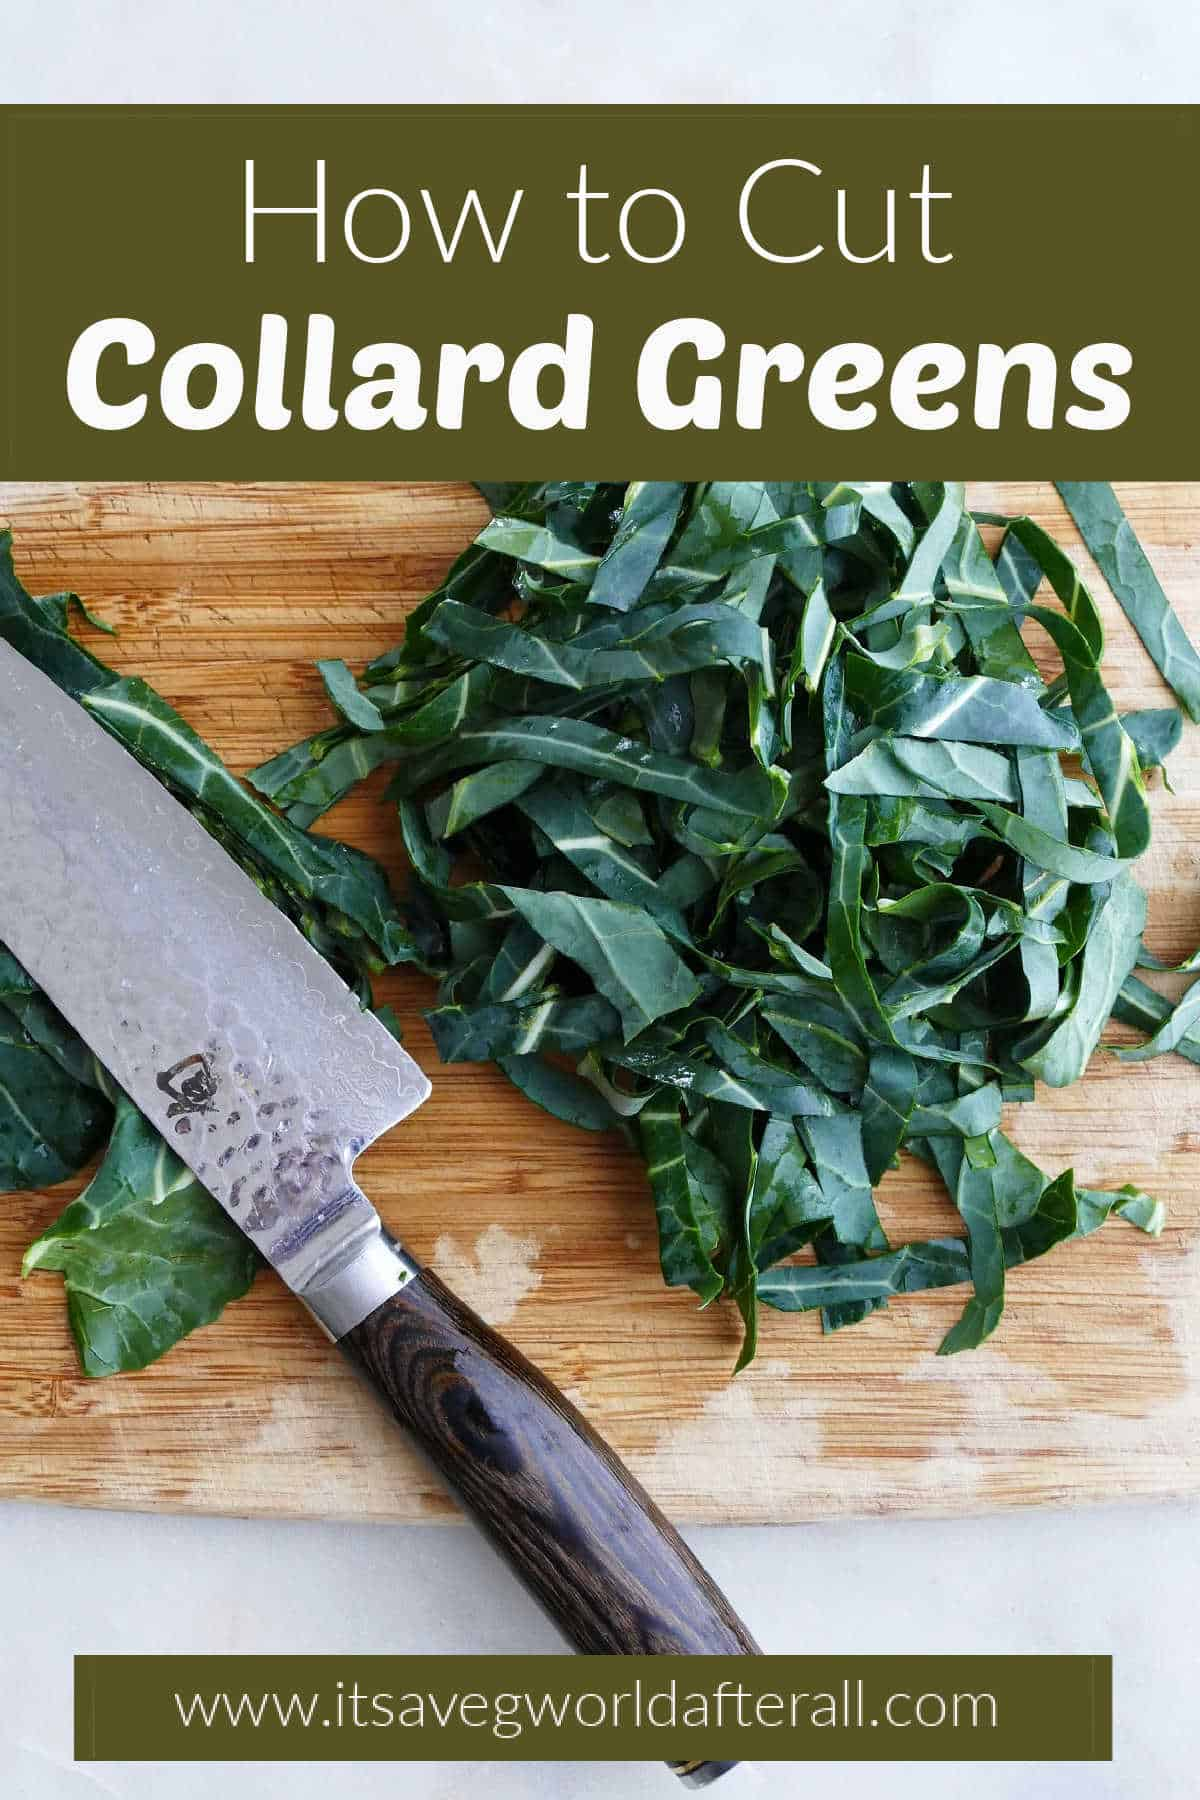 image of sliced collards on a cutting board with knife under text box with post title